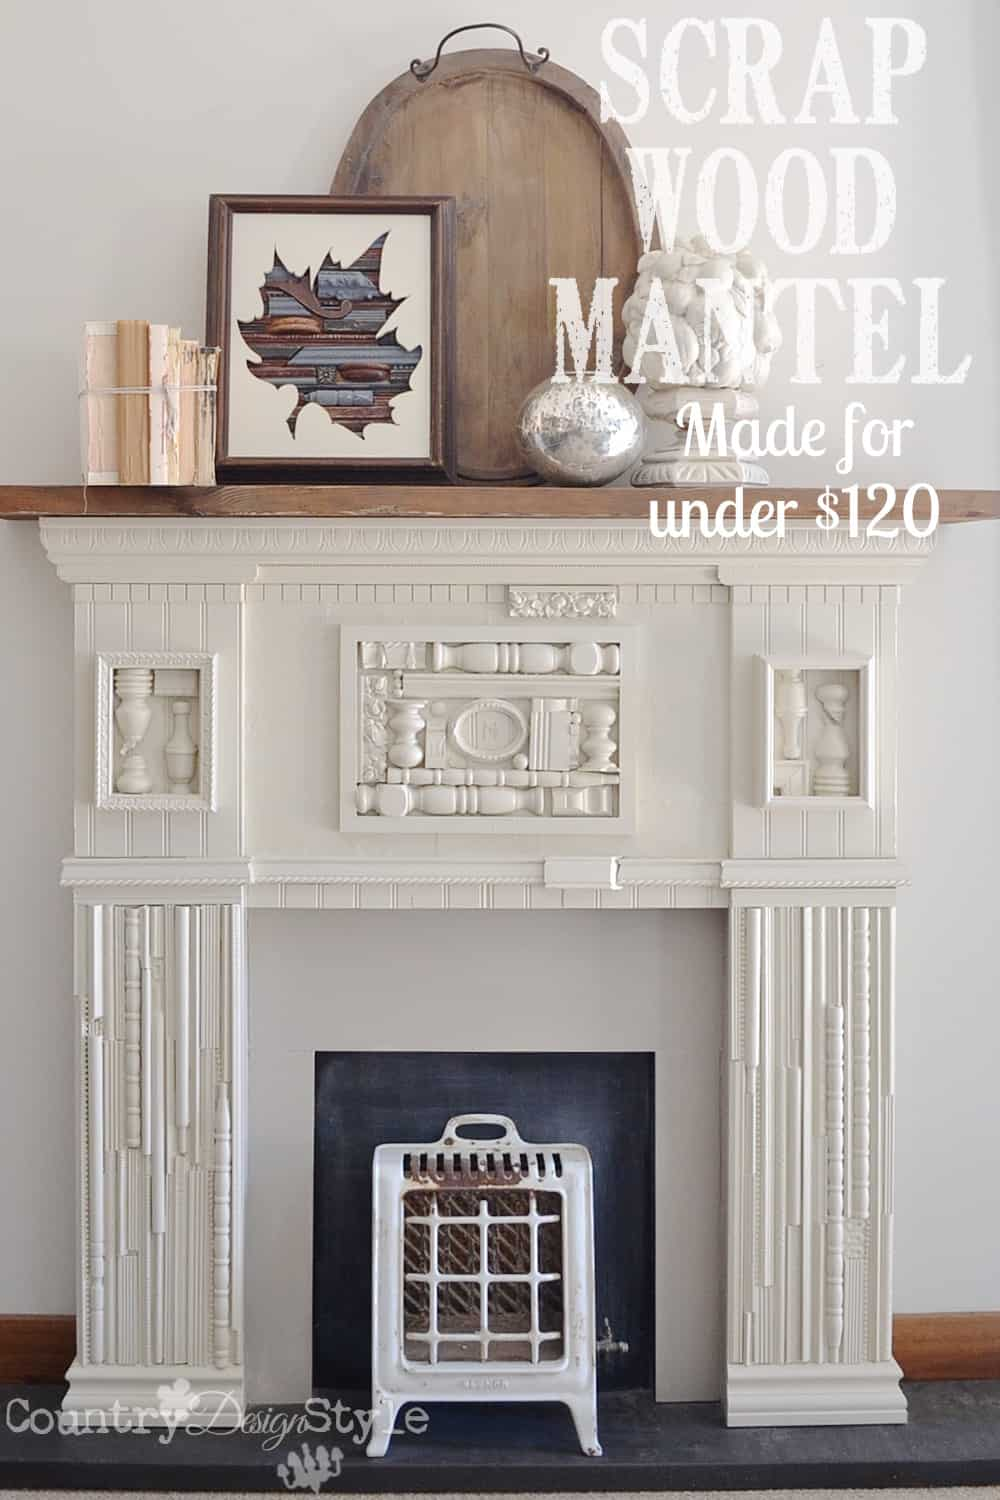 DIY Mantel Ideas | This amazing mantel was made using pieces of scrap wood, trim, spindles, etc. I love this creative mantel idea and that anyone with basic woodworking skills can make one!